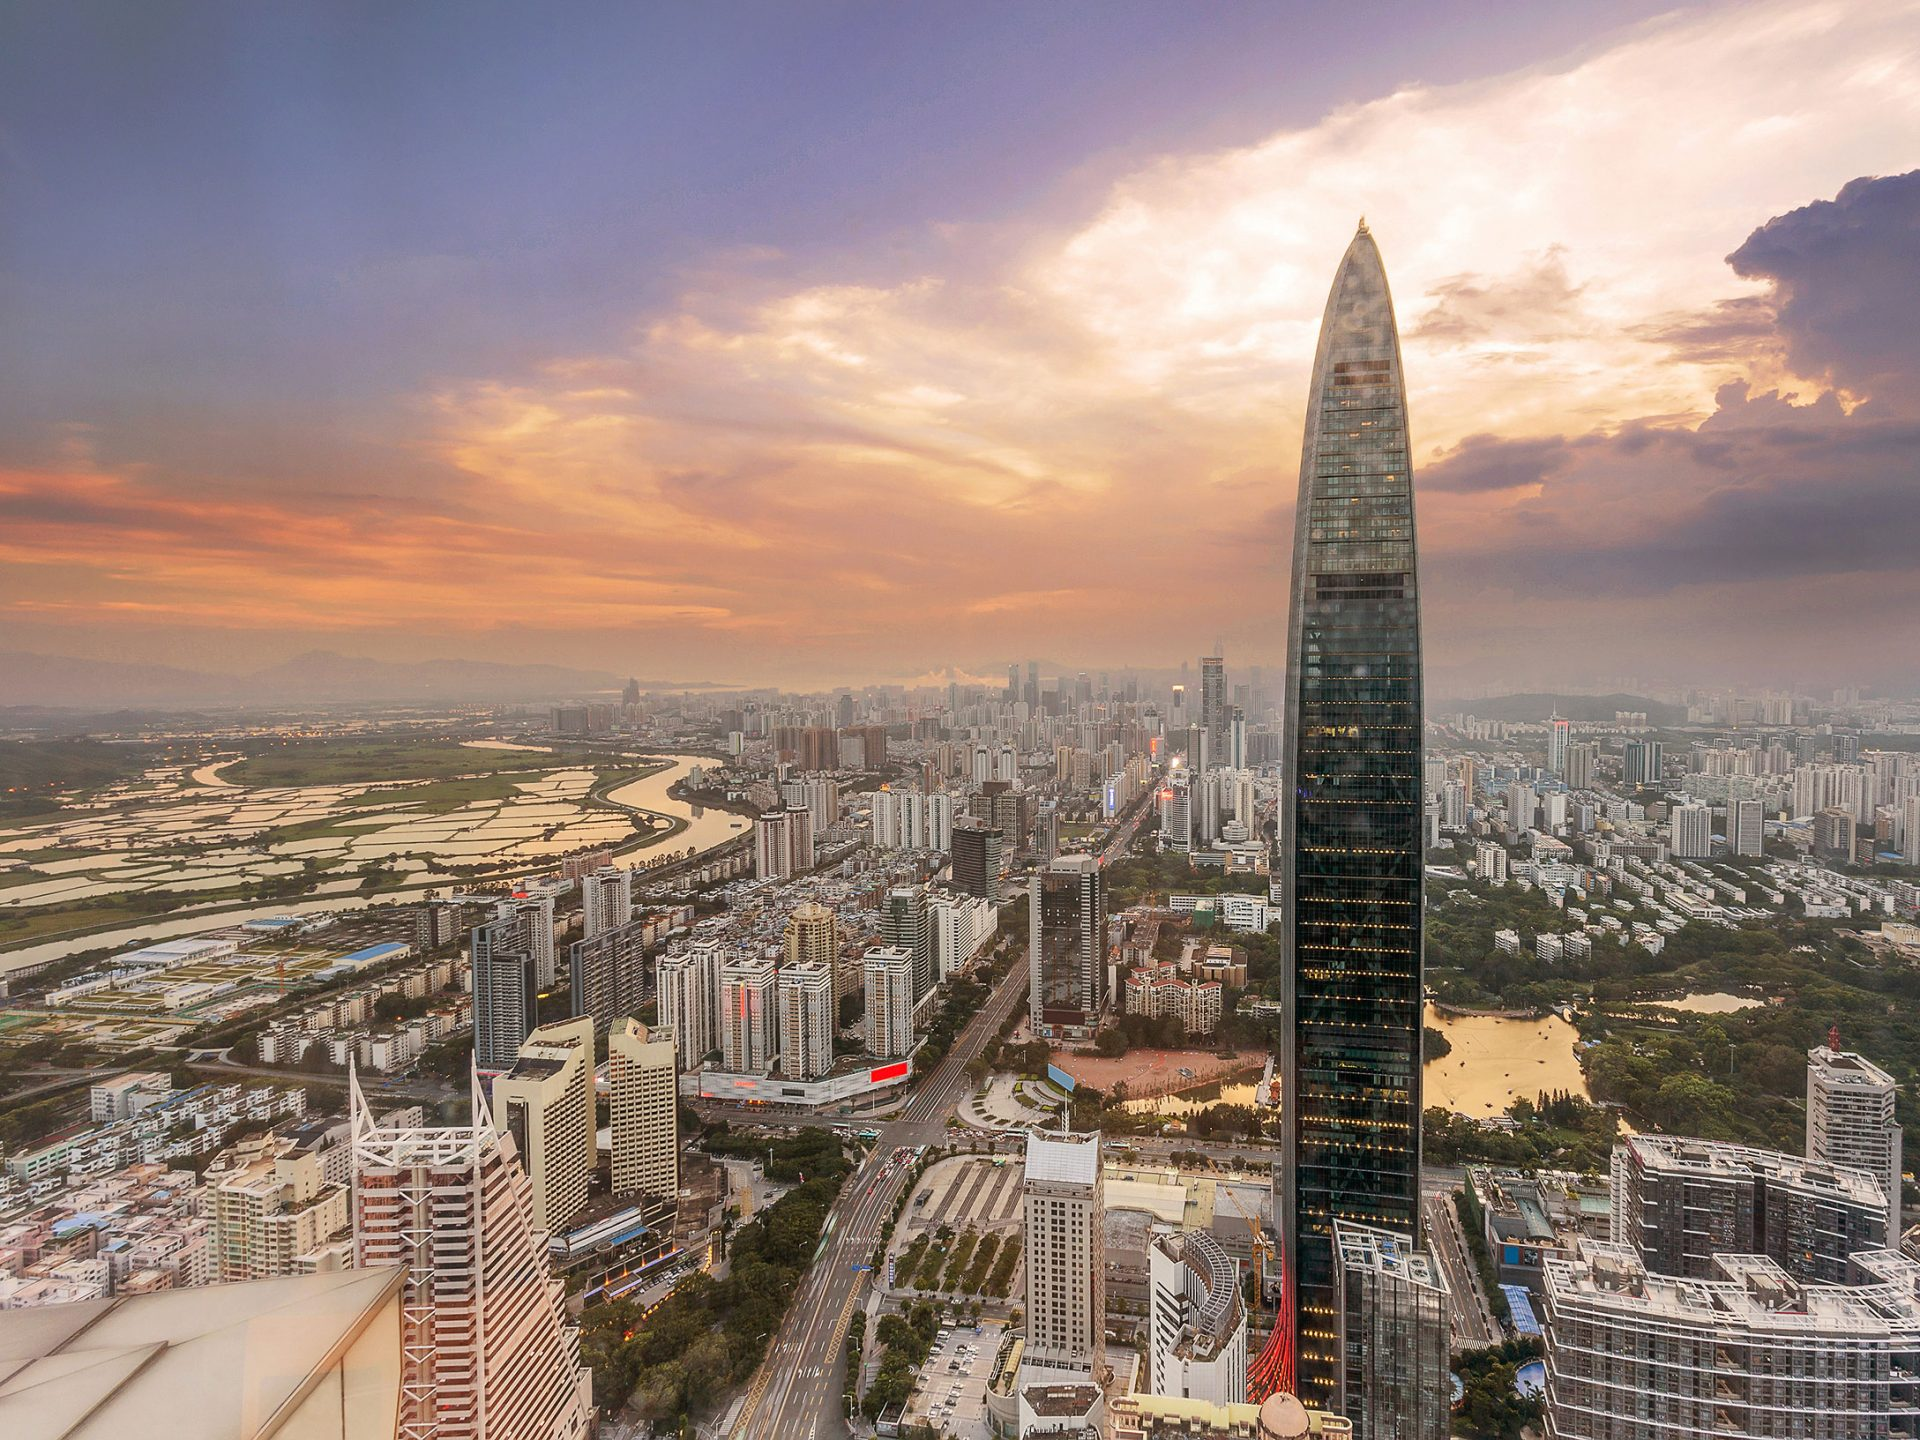 Shenzhen as a Special Economic Zone